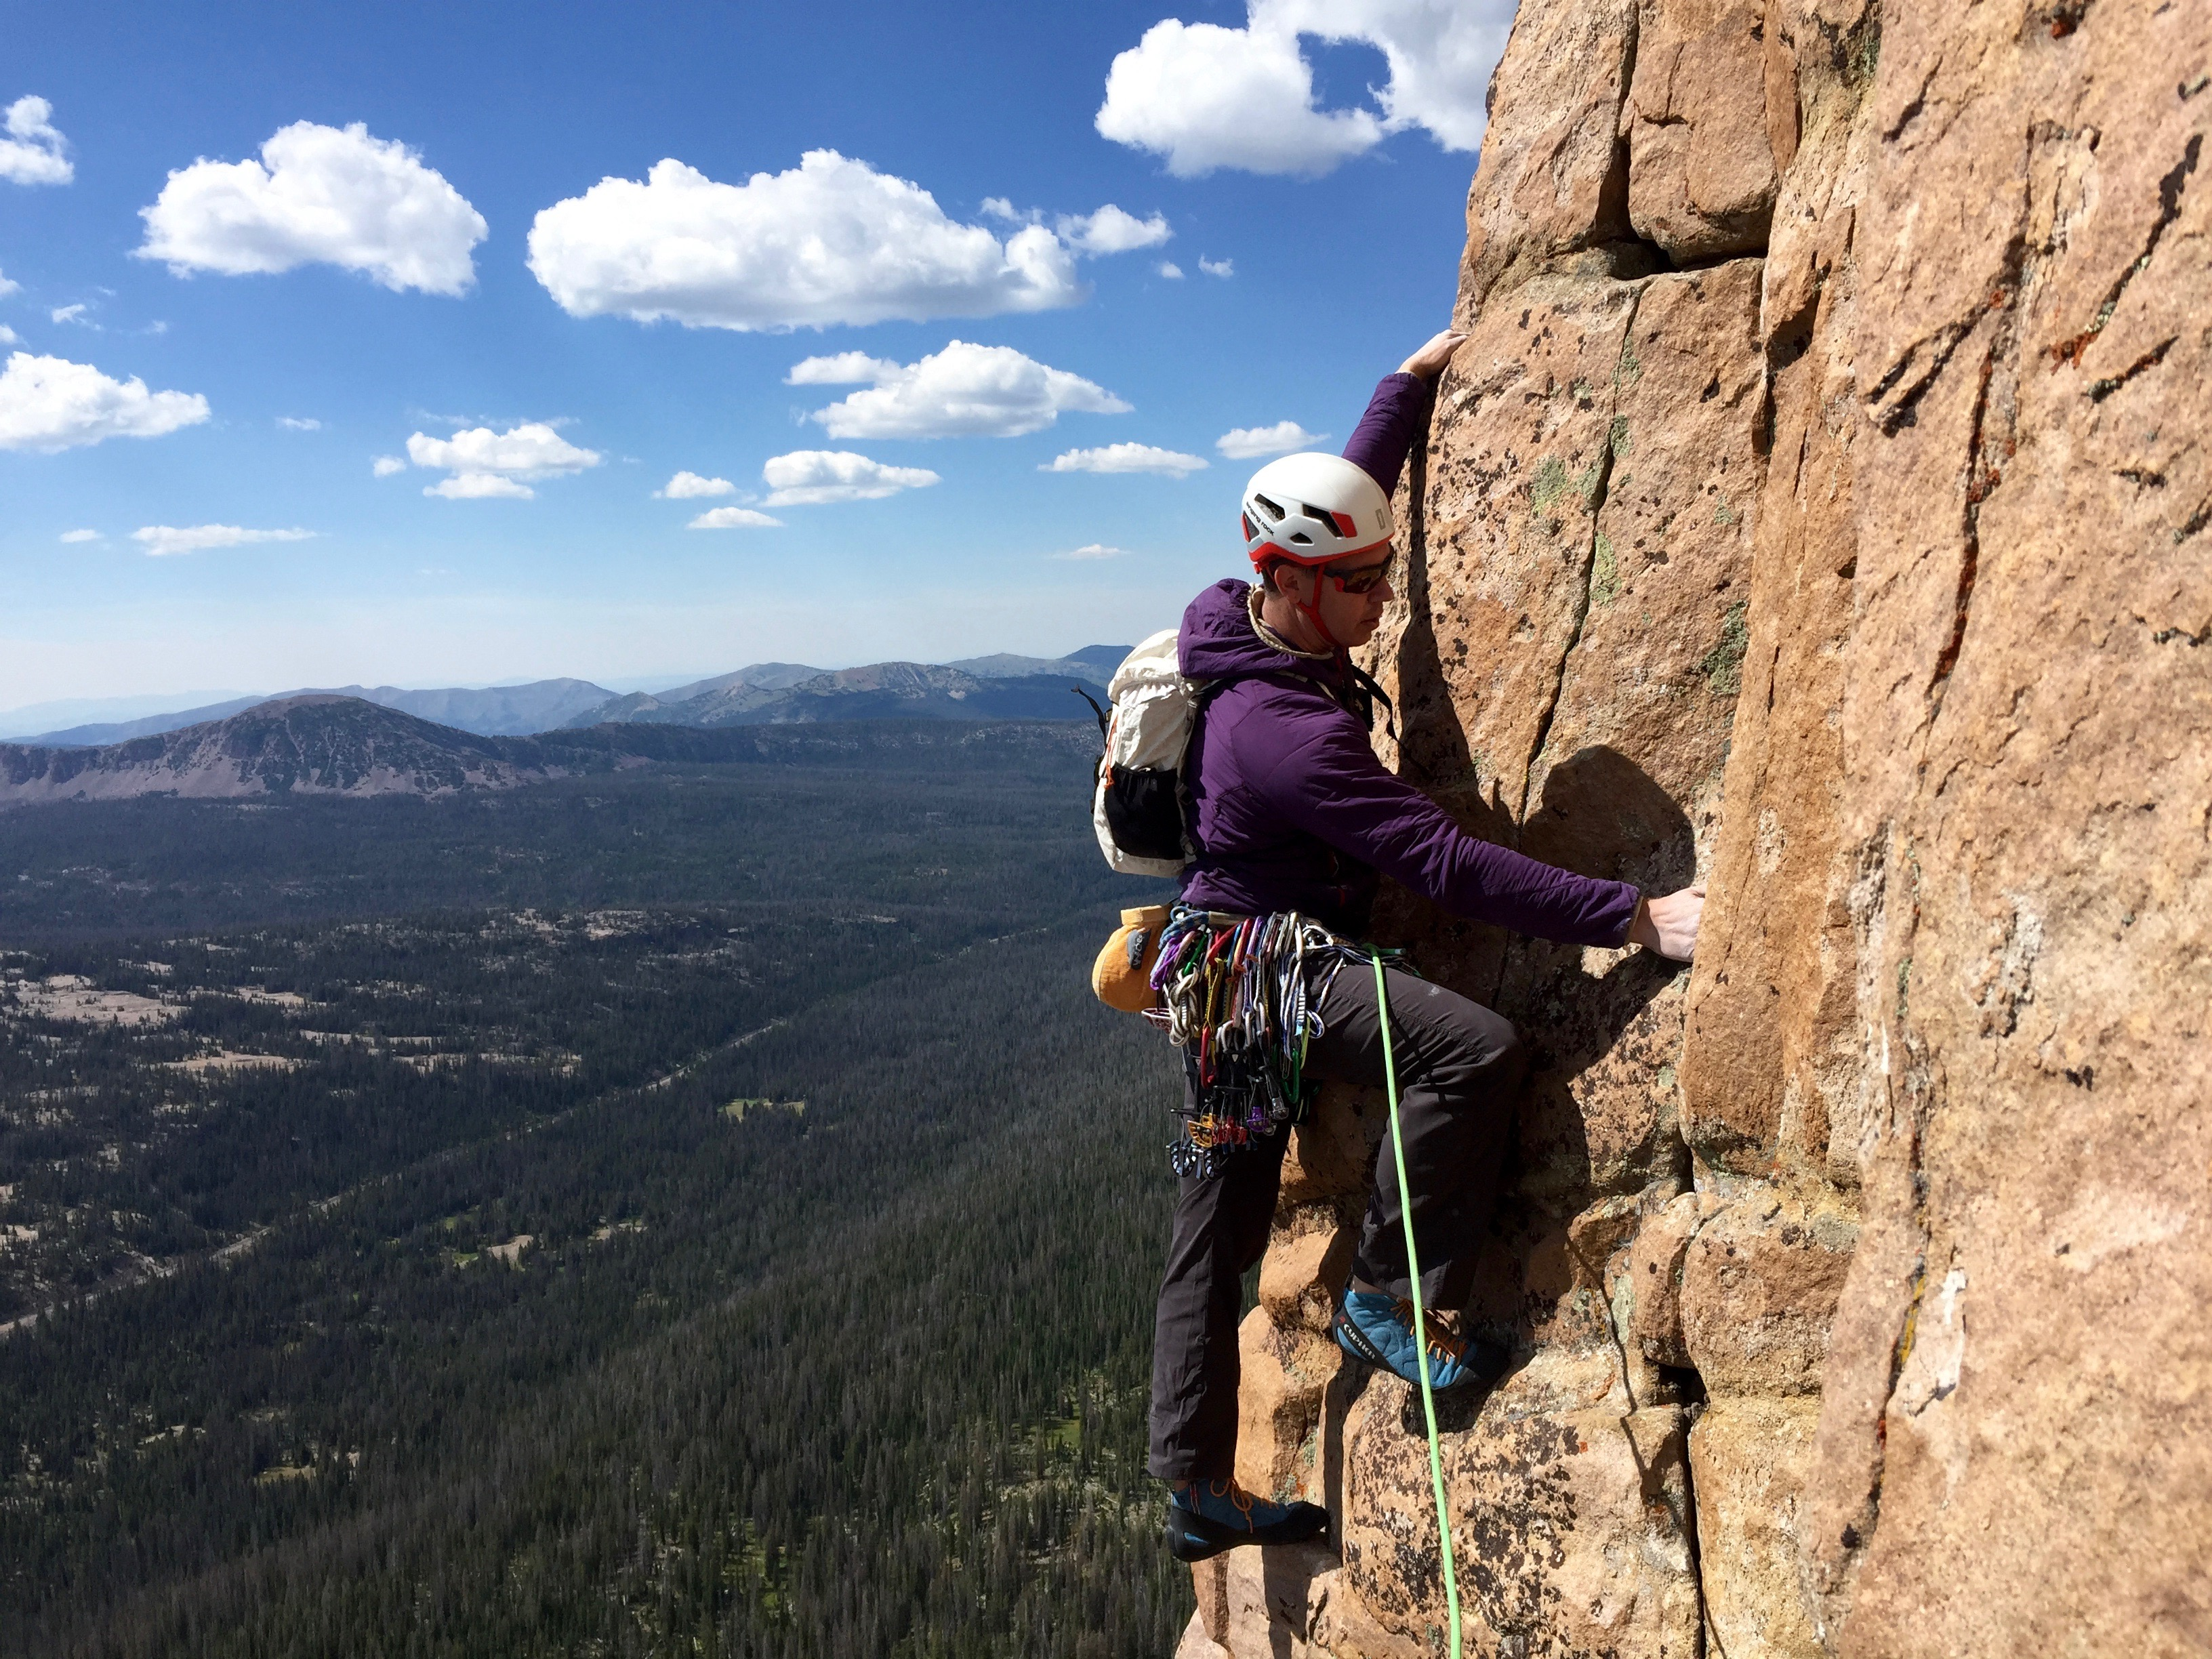 Cypher Climber Nikki Smith